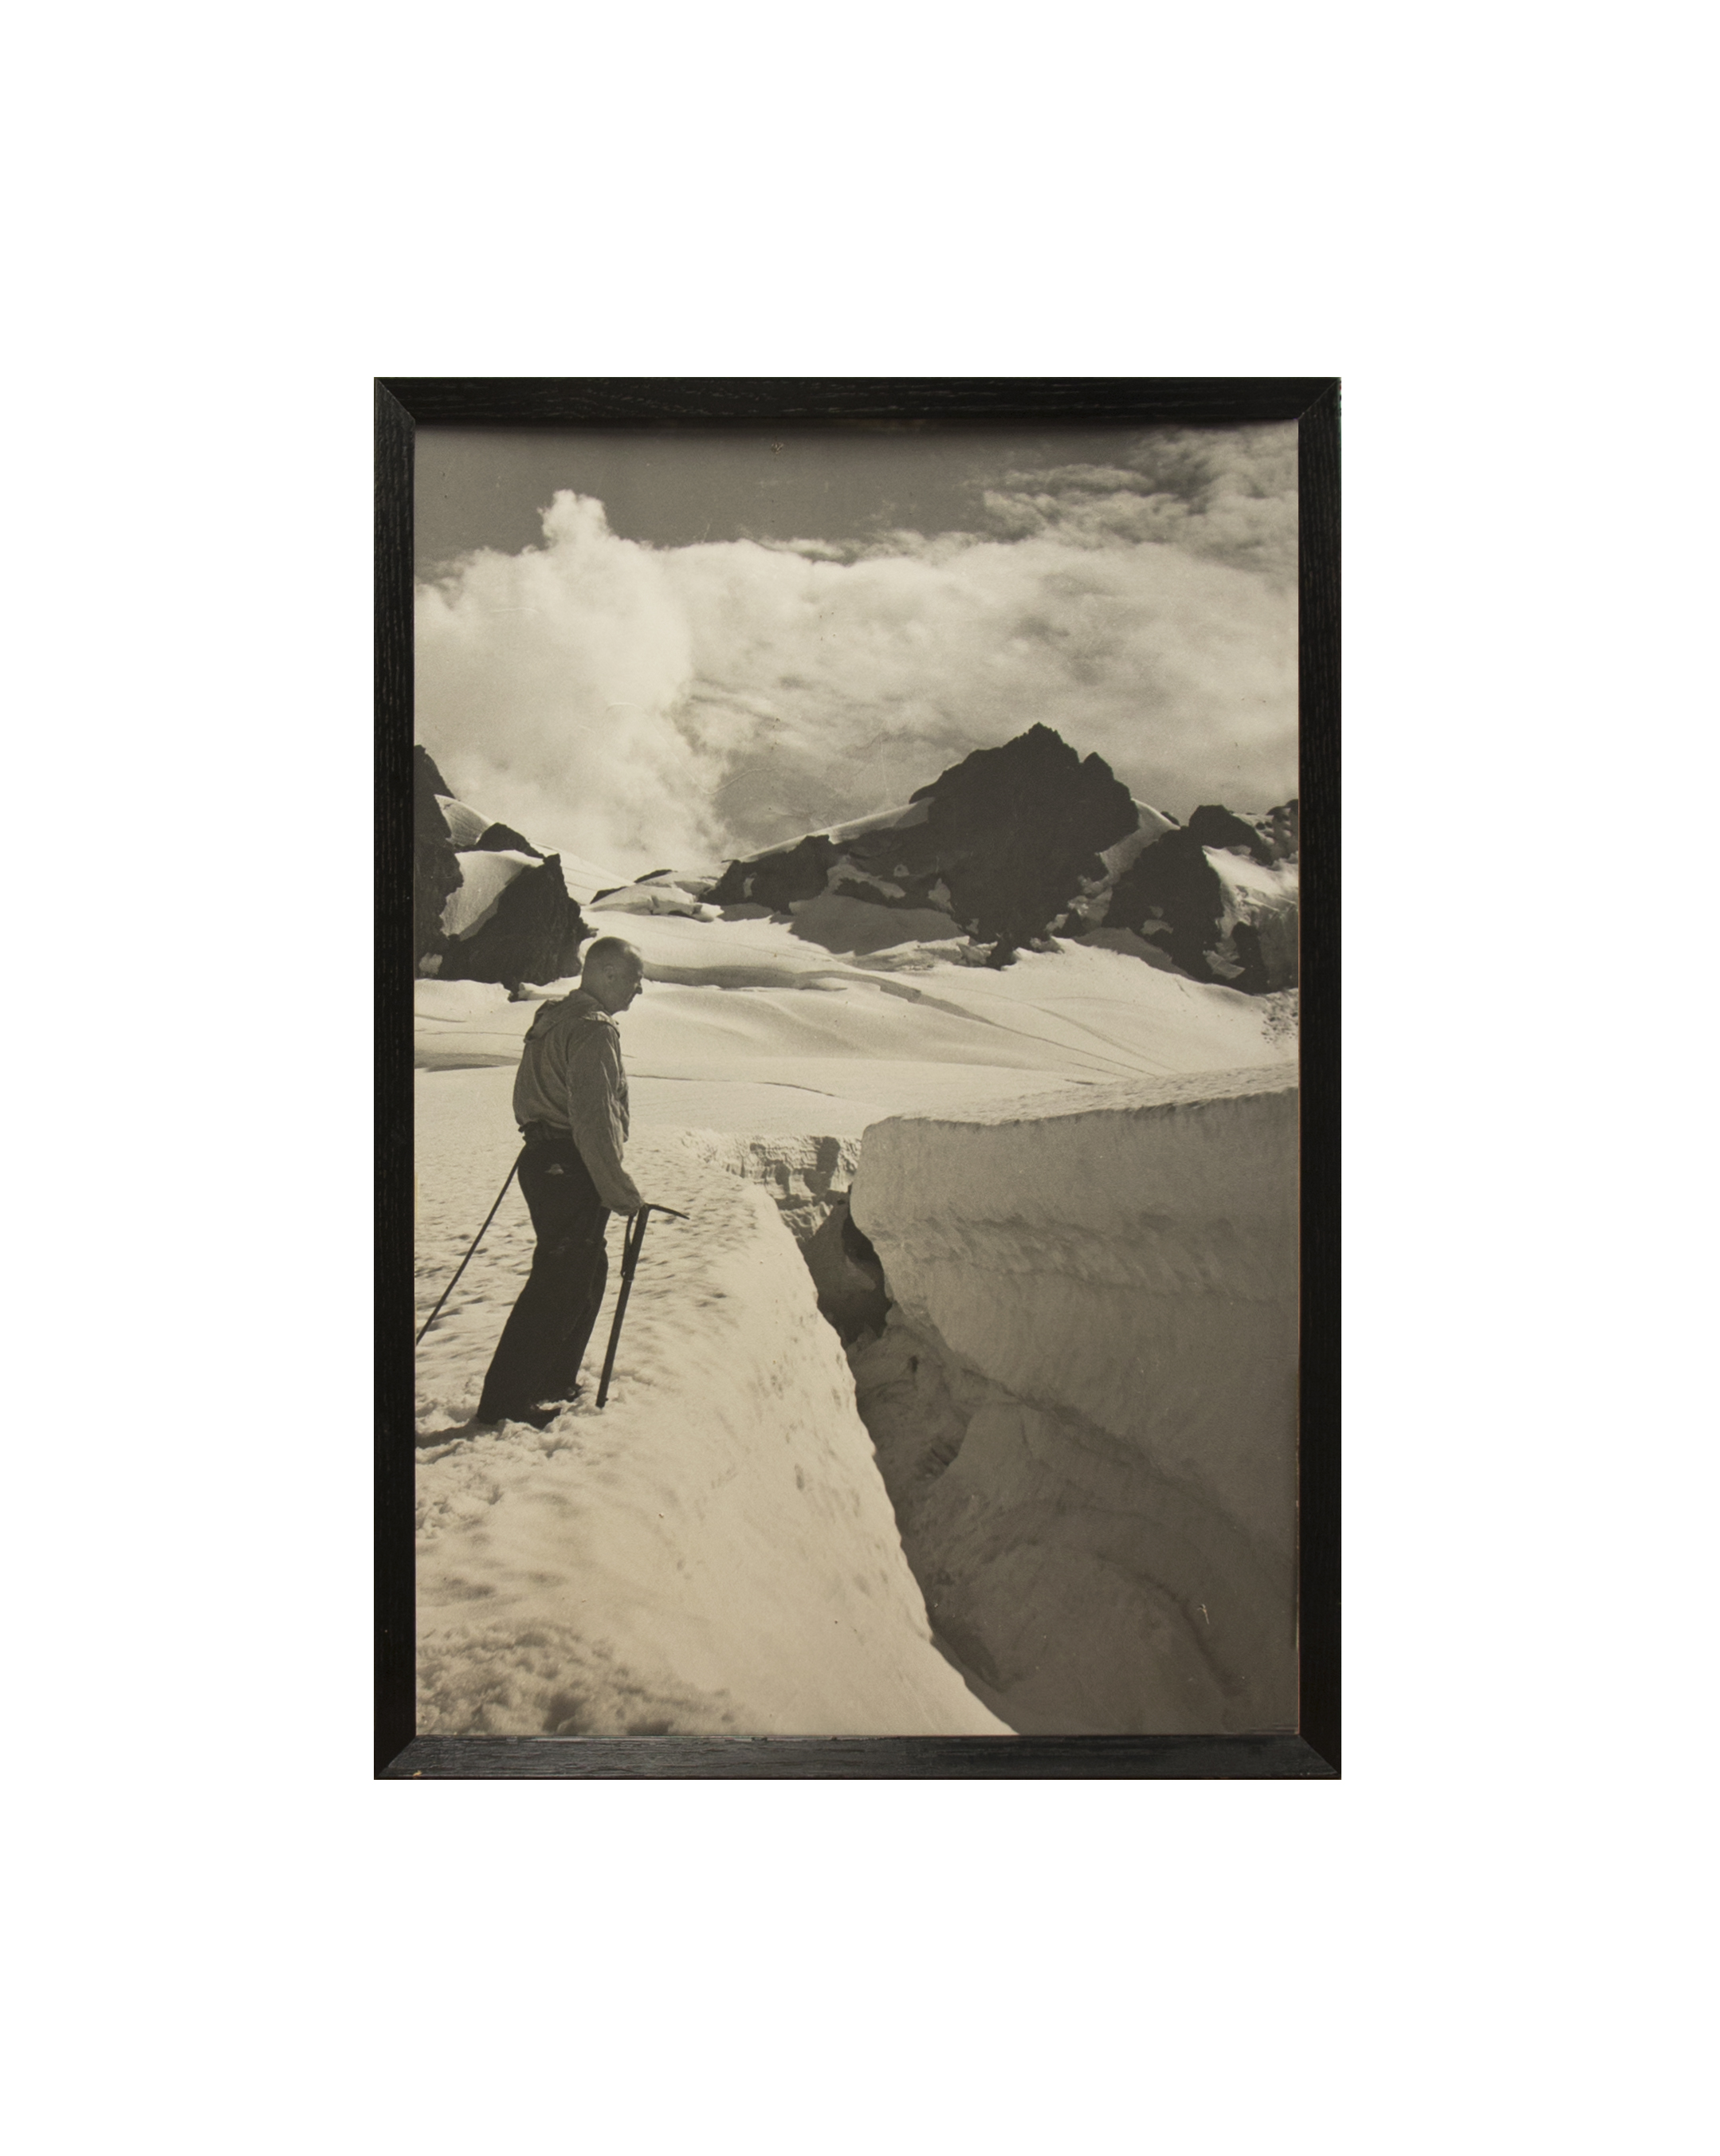 black and while photo of a man on a glacier with Olympic peaks in the distance